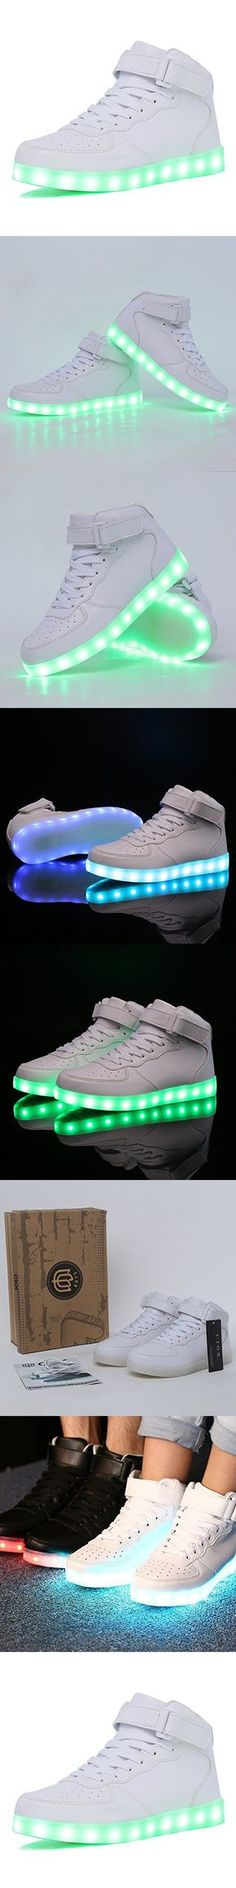 Adults Led Usb Charging Glowing Sneakers Hook Loop Footwear Unisex Fashion Luminous Casual Shoes For Men Women Dancing Shoes Perfect In Workmanship Shoes Men's Casual Shoes